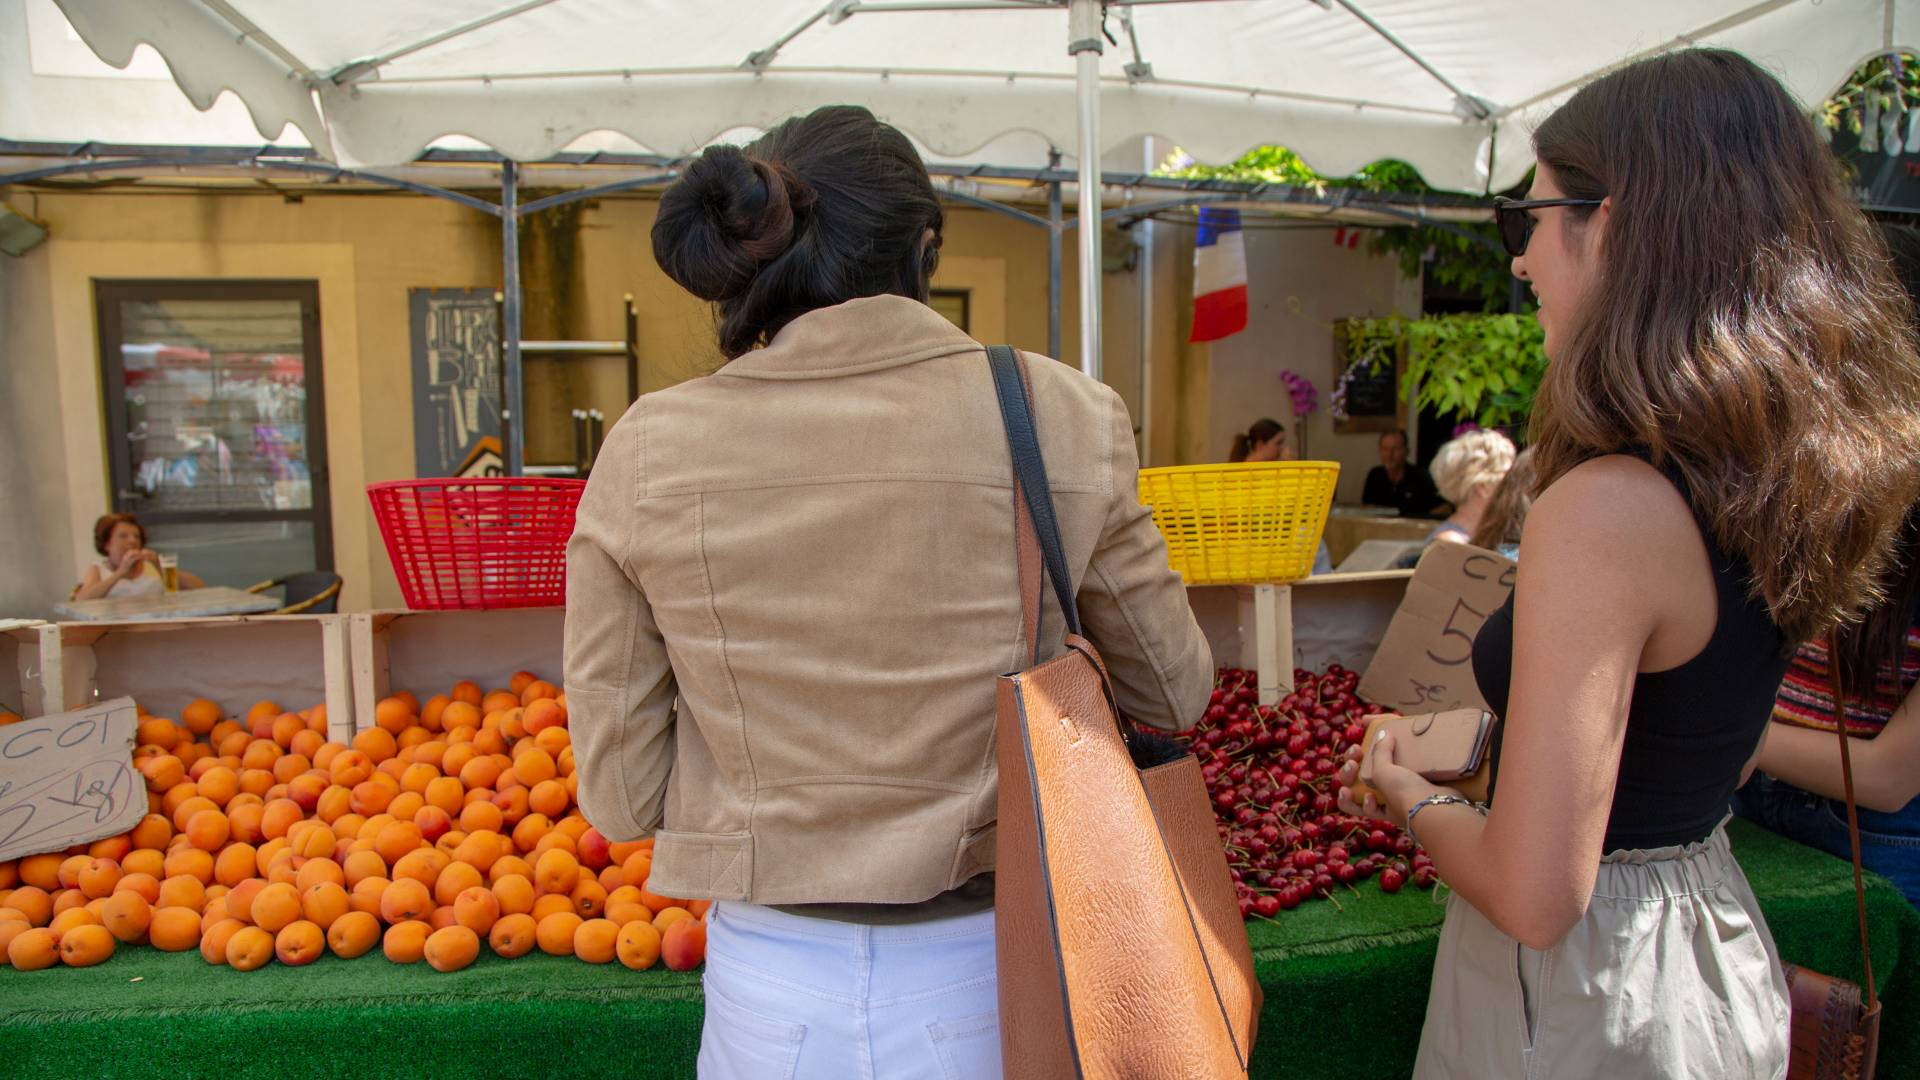 Students looking at fruit in outdoor market in France